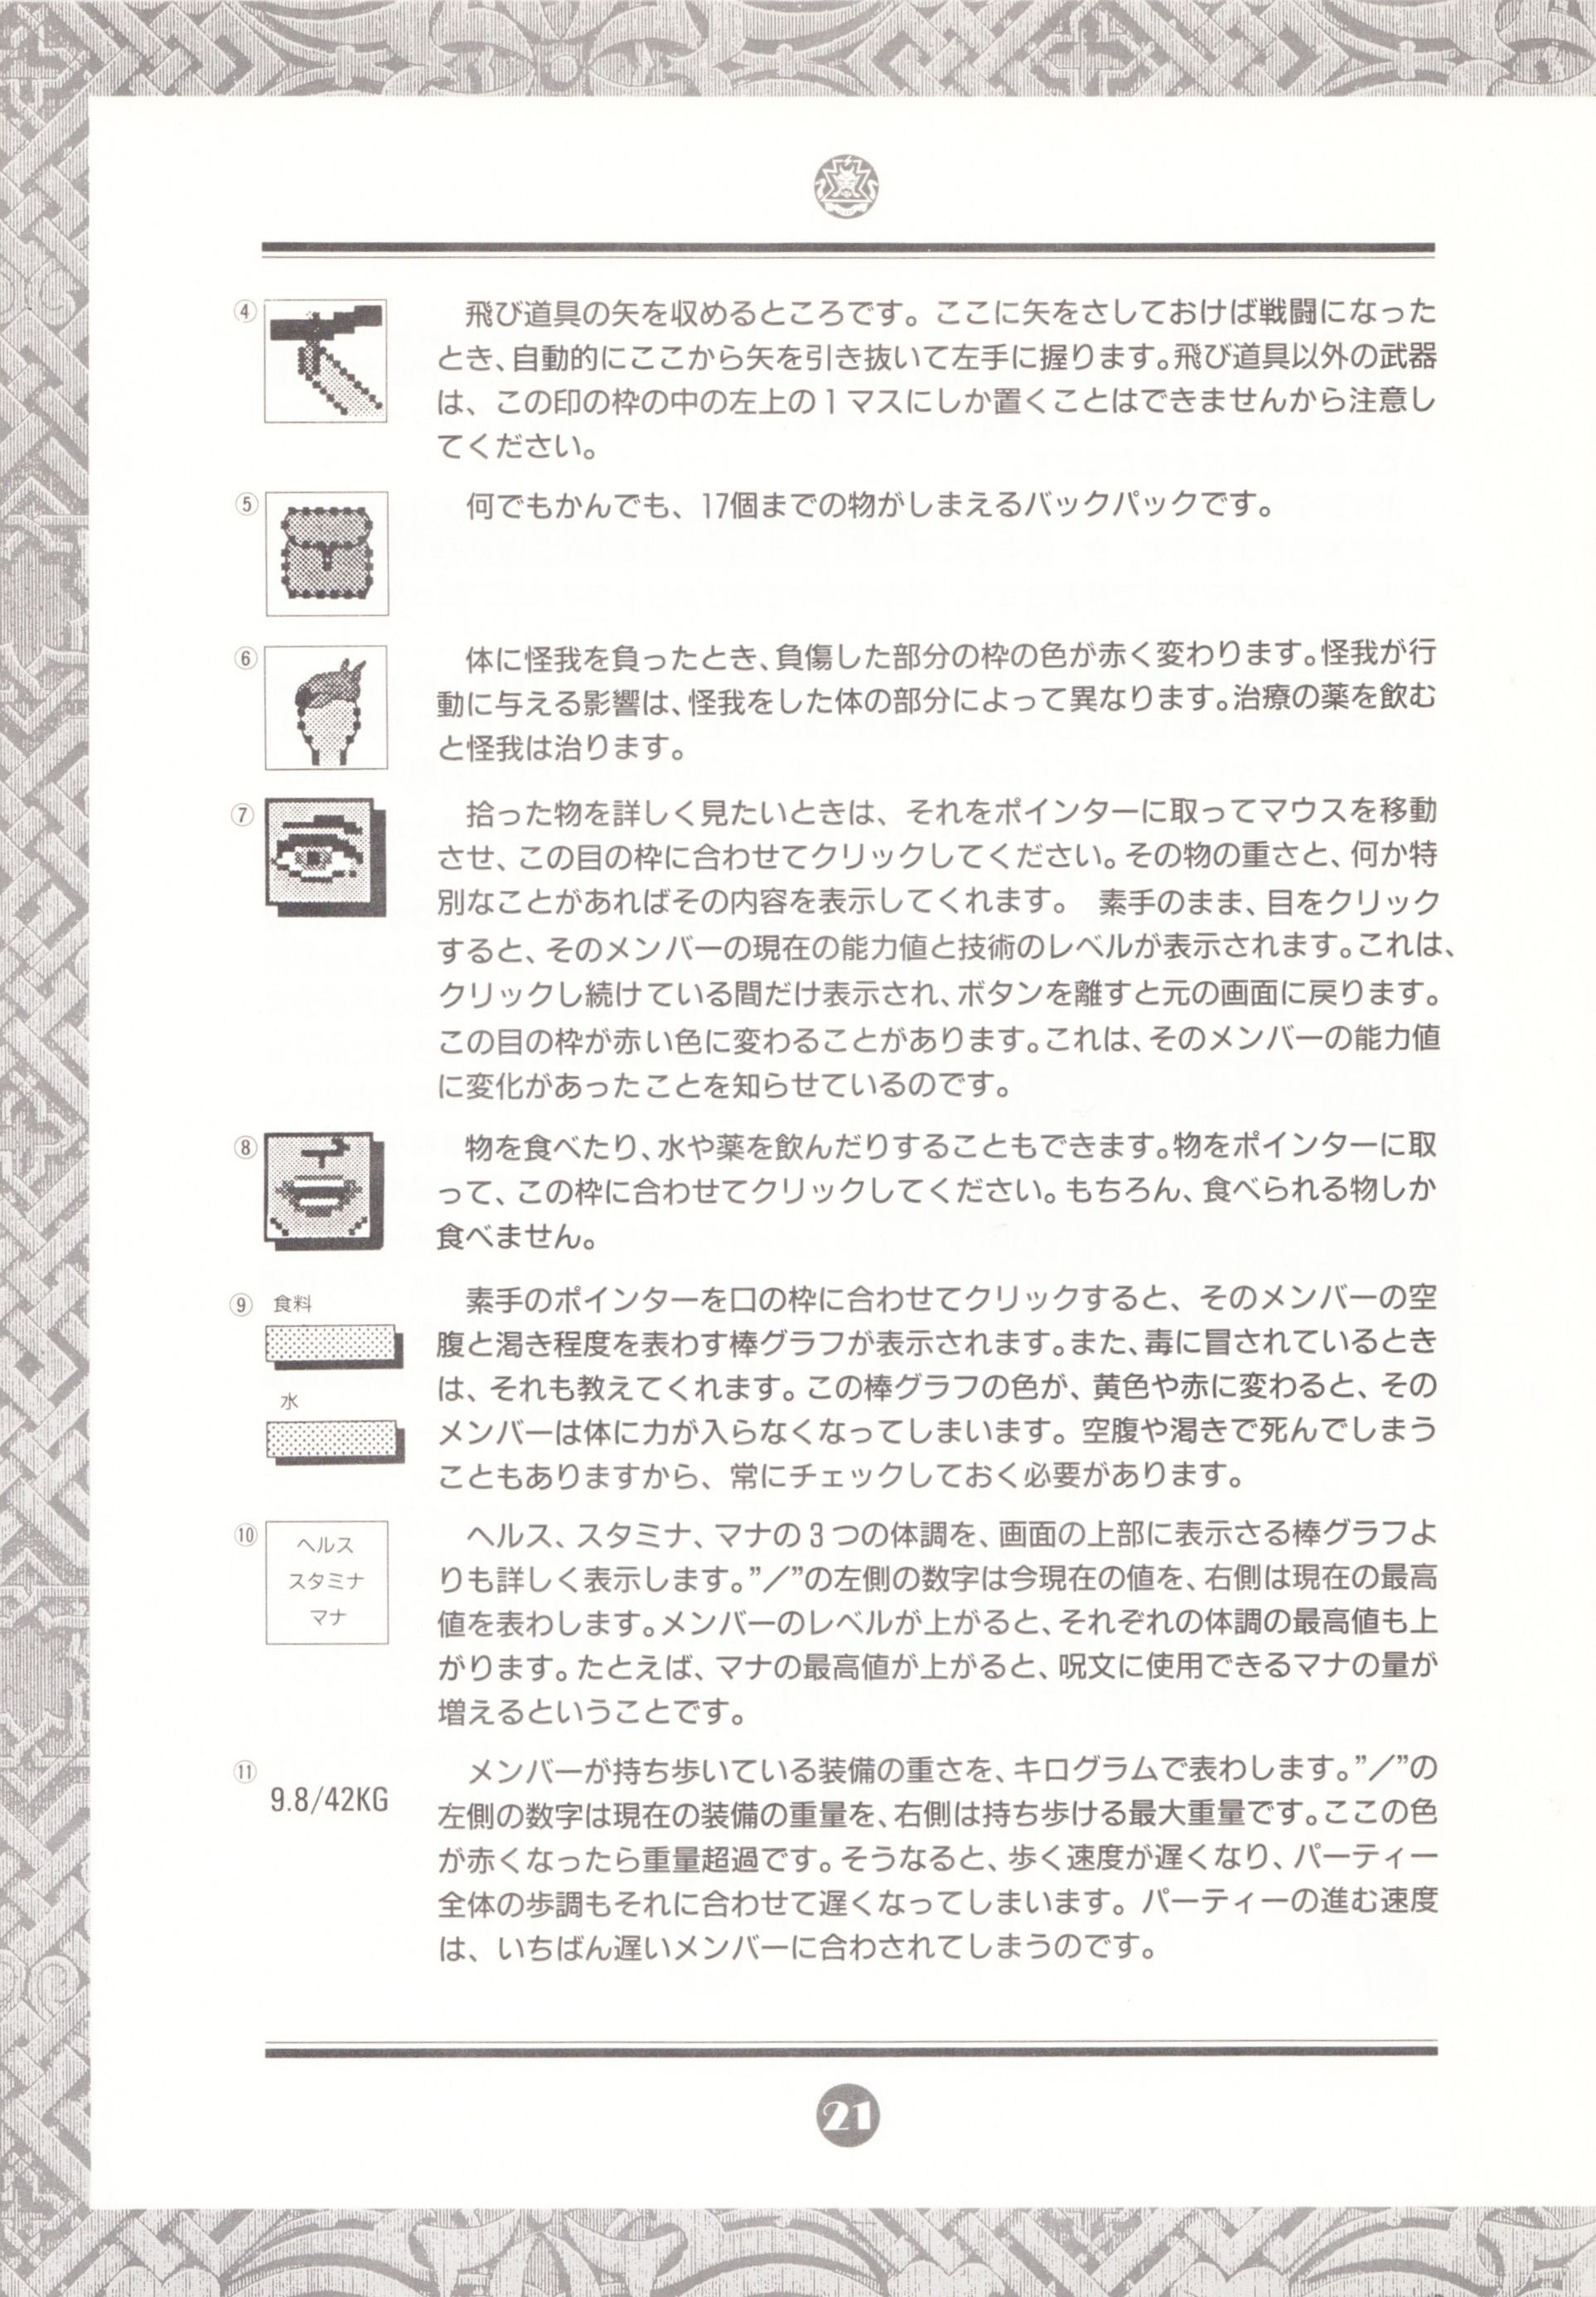 Game - Chaos Strikes Back - JP - FM Towns - An Operation Manual - Page 024 - Scan